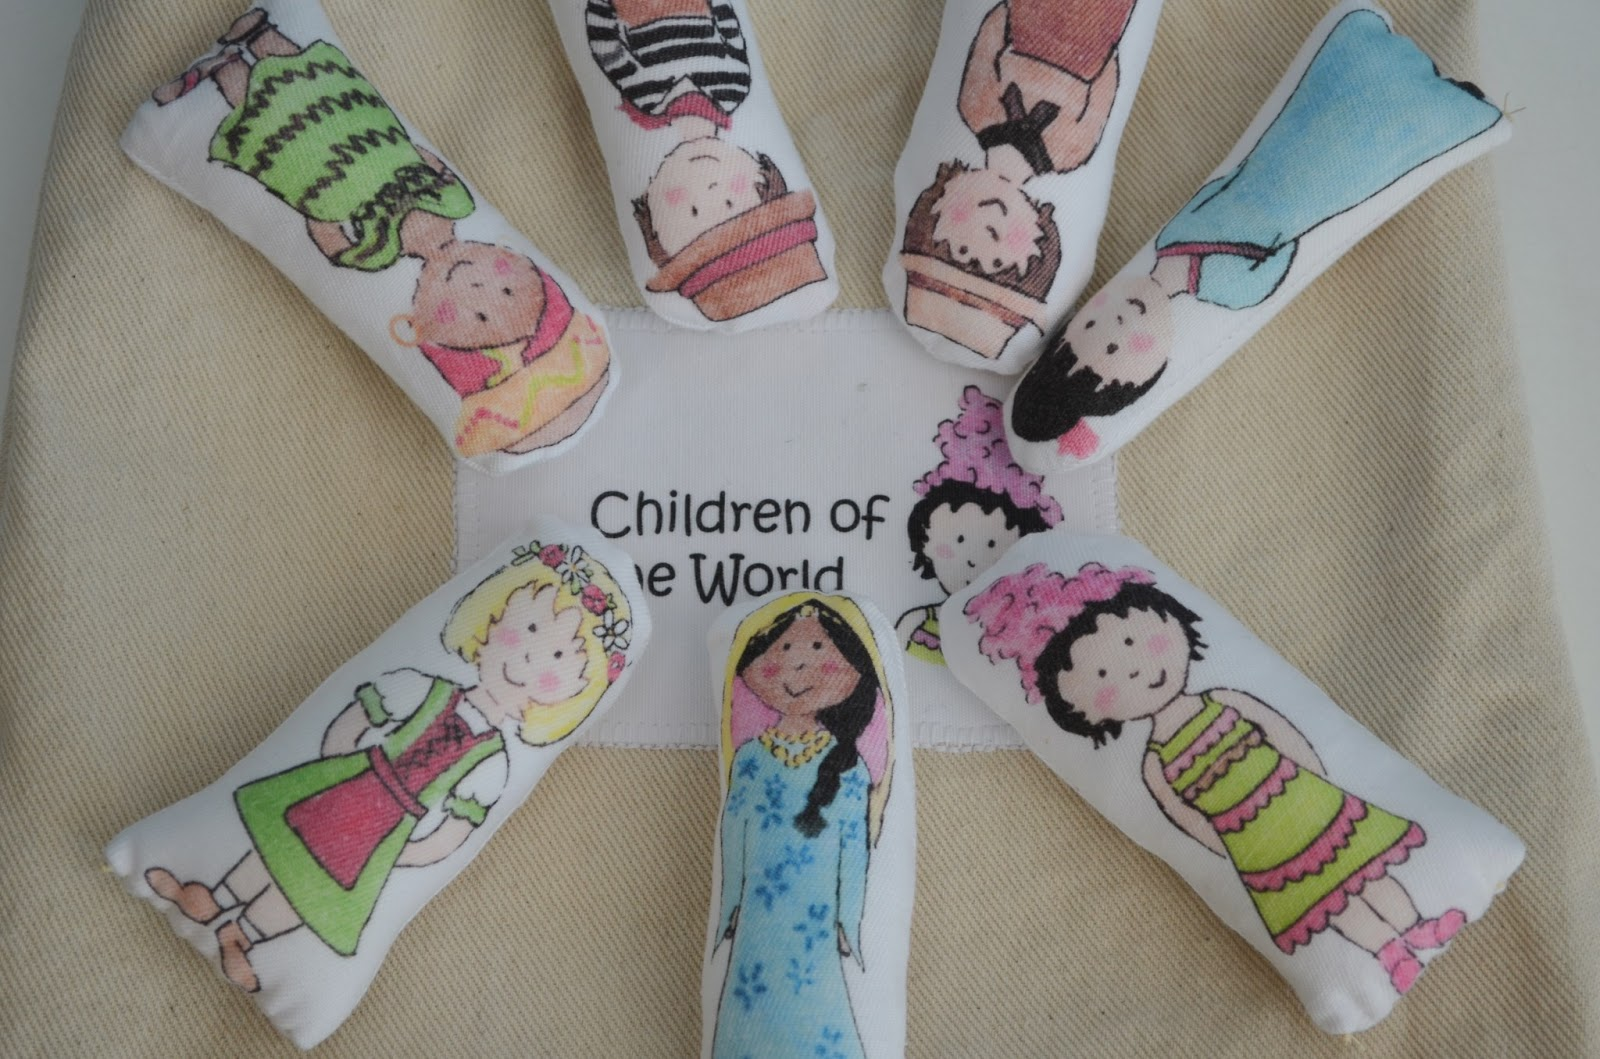 Snugglebug university children of the world fabric dolls for Children of the world fabric